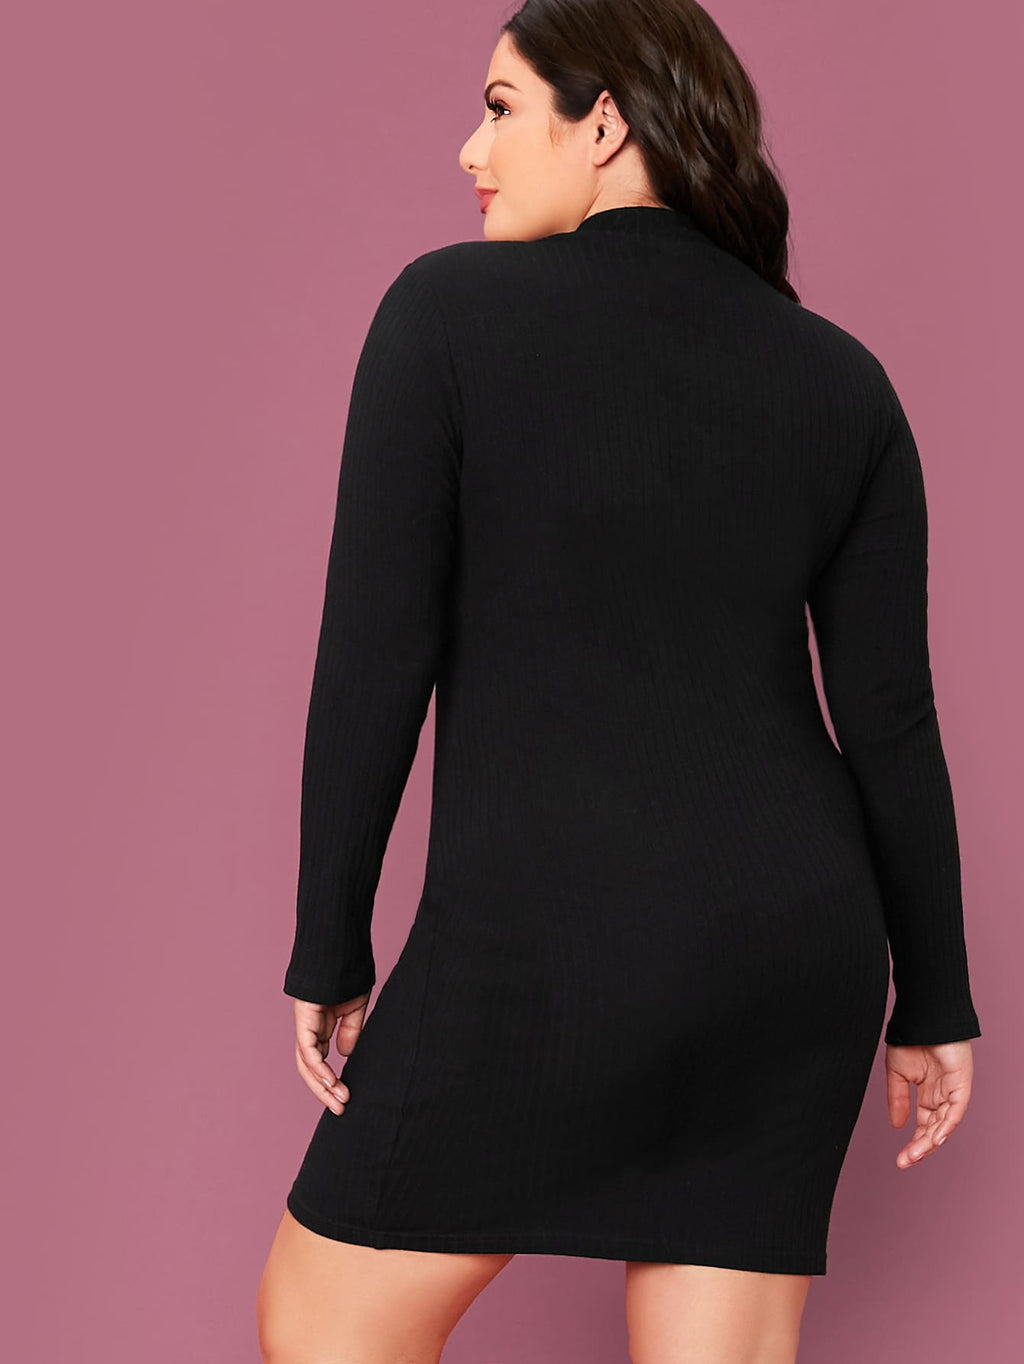 Plus Size Trendy Paris Mock-neck Bodycon Dress